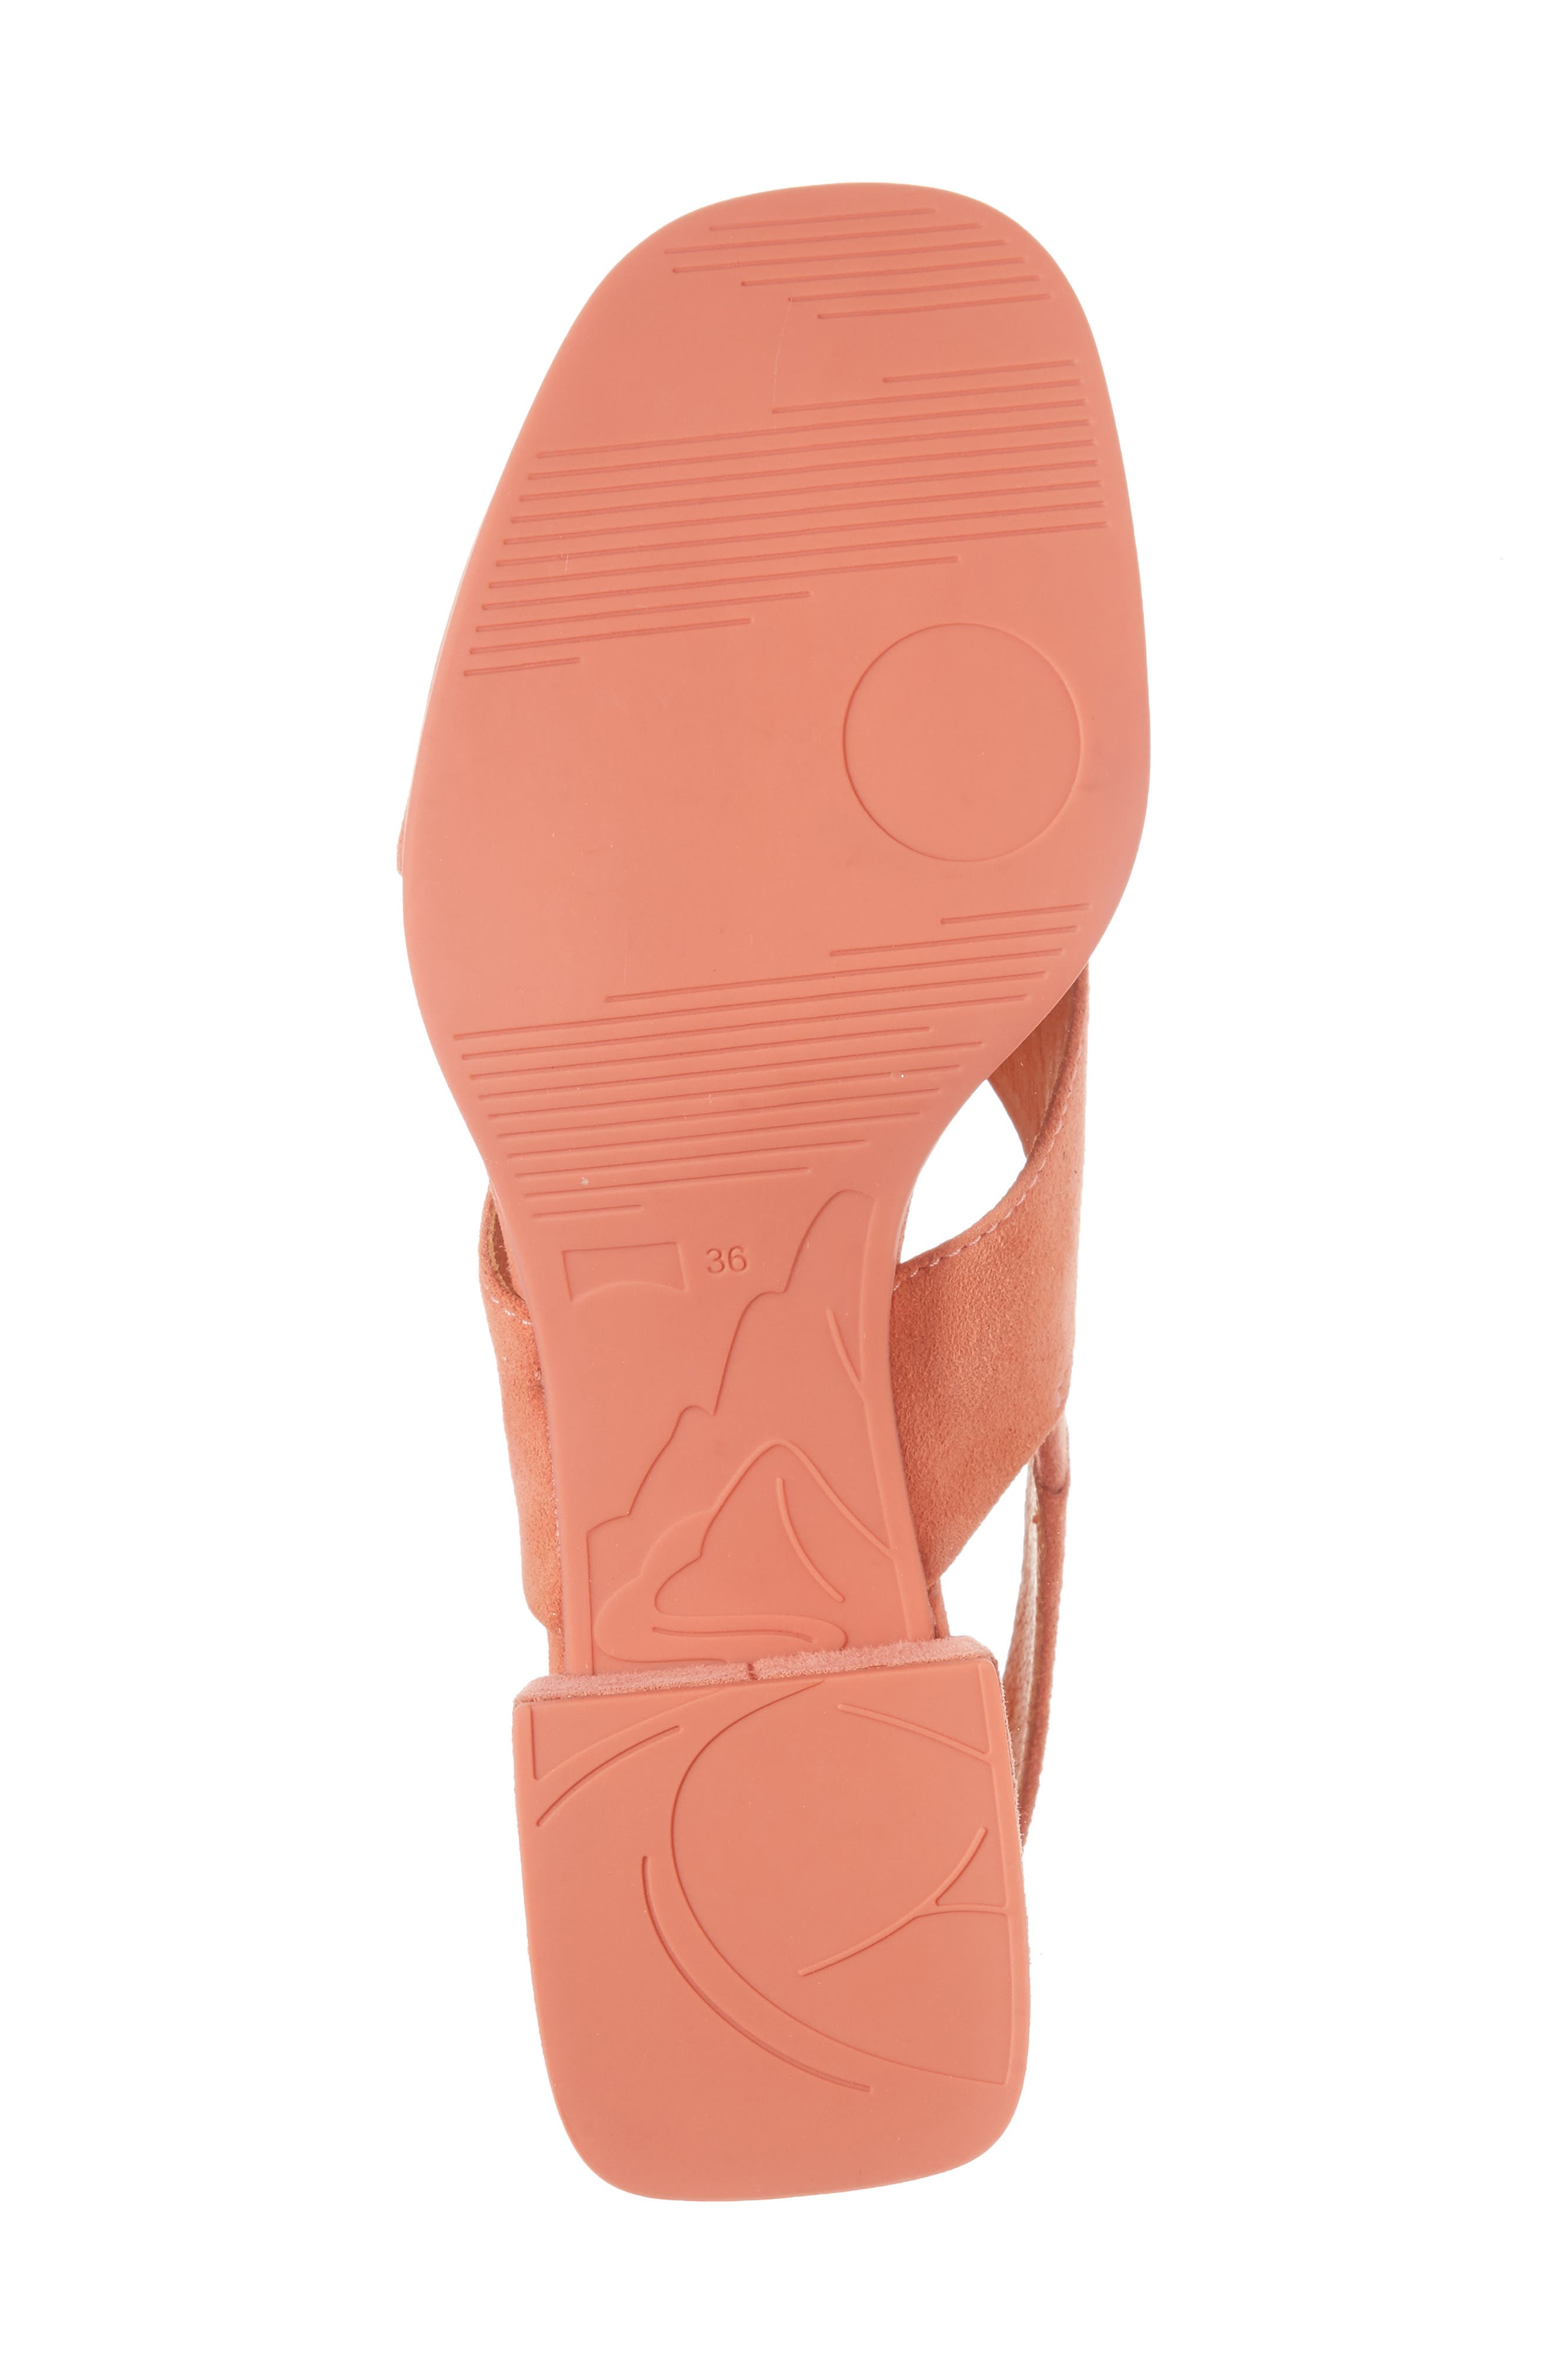 Kobo Cross Strap Sandal,                             Alternate thumbnail 6, color,                             MEDIUM PINK LEATHER